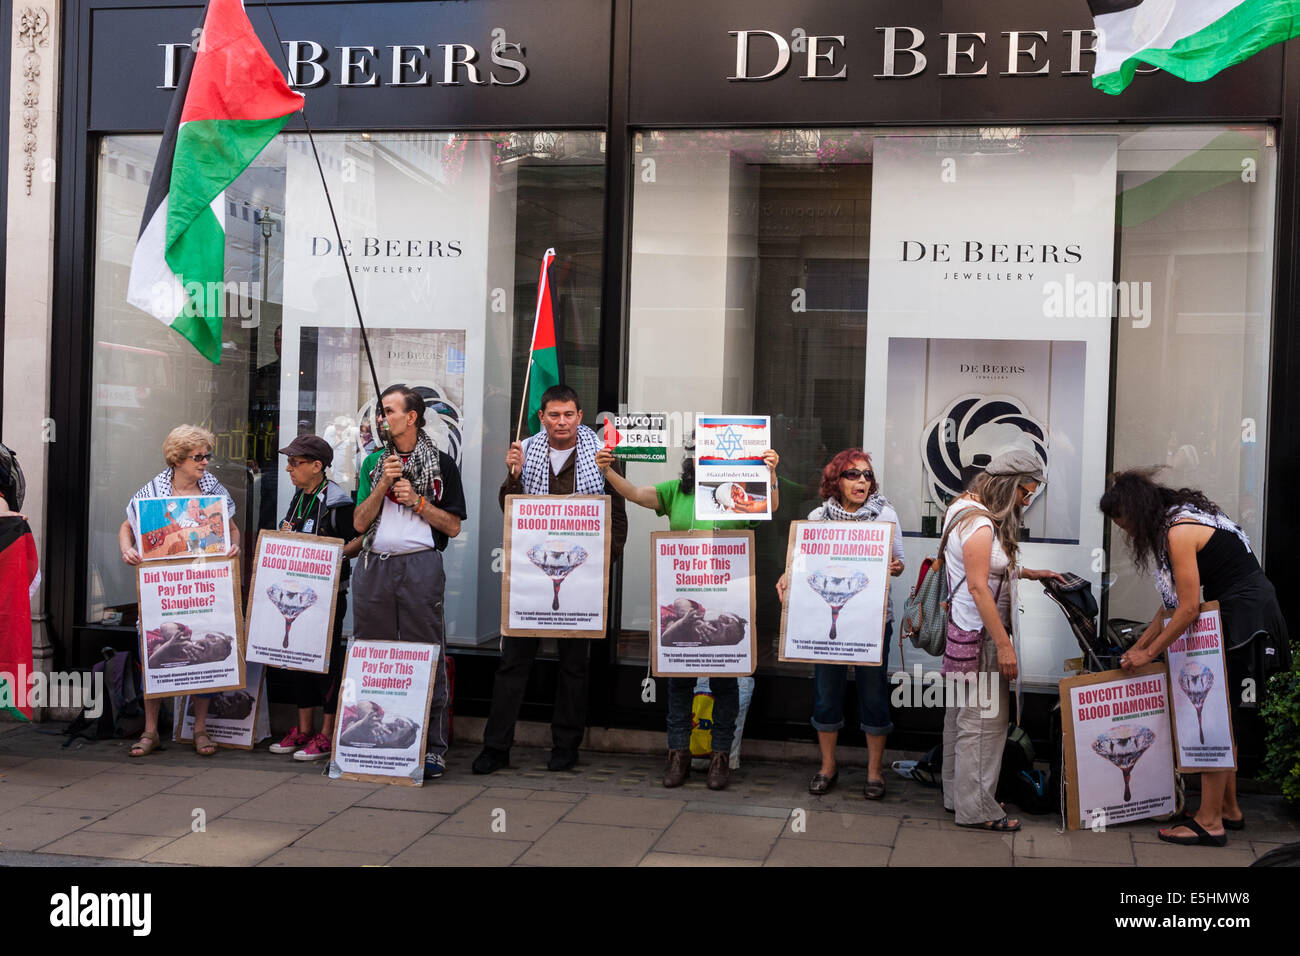 London, August 1st 2014. A small group of Palestinian supporters protest outside De Beers in Mayfair against the - Stock Image